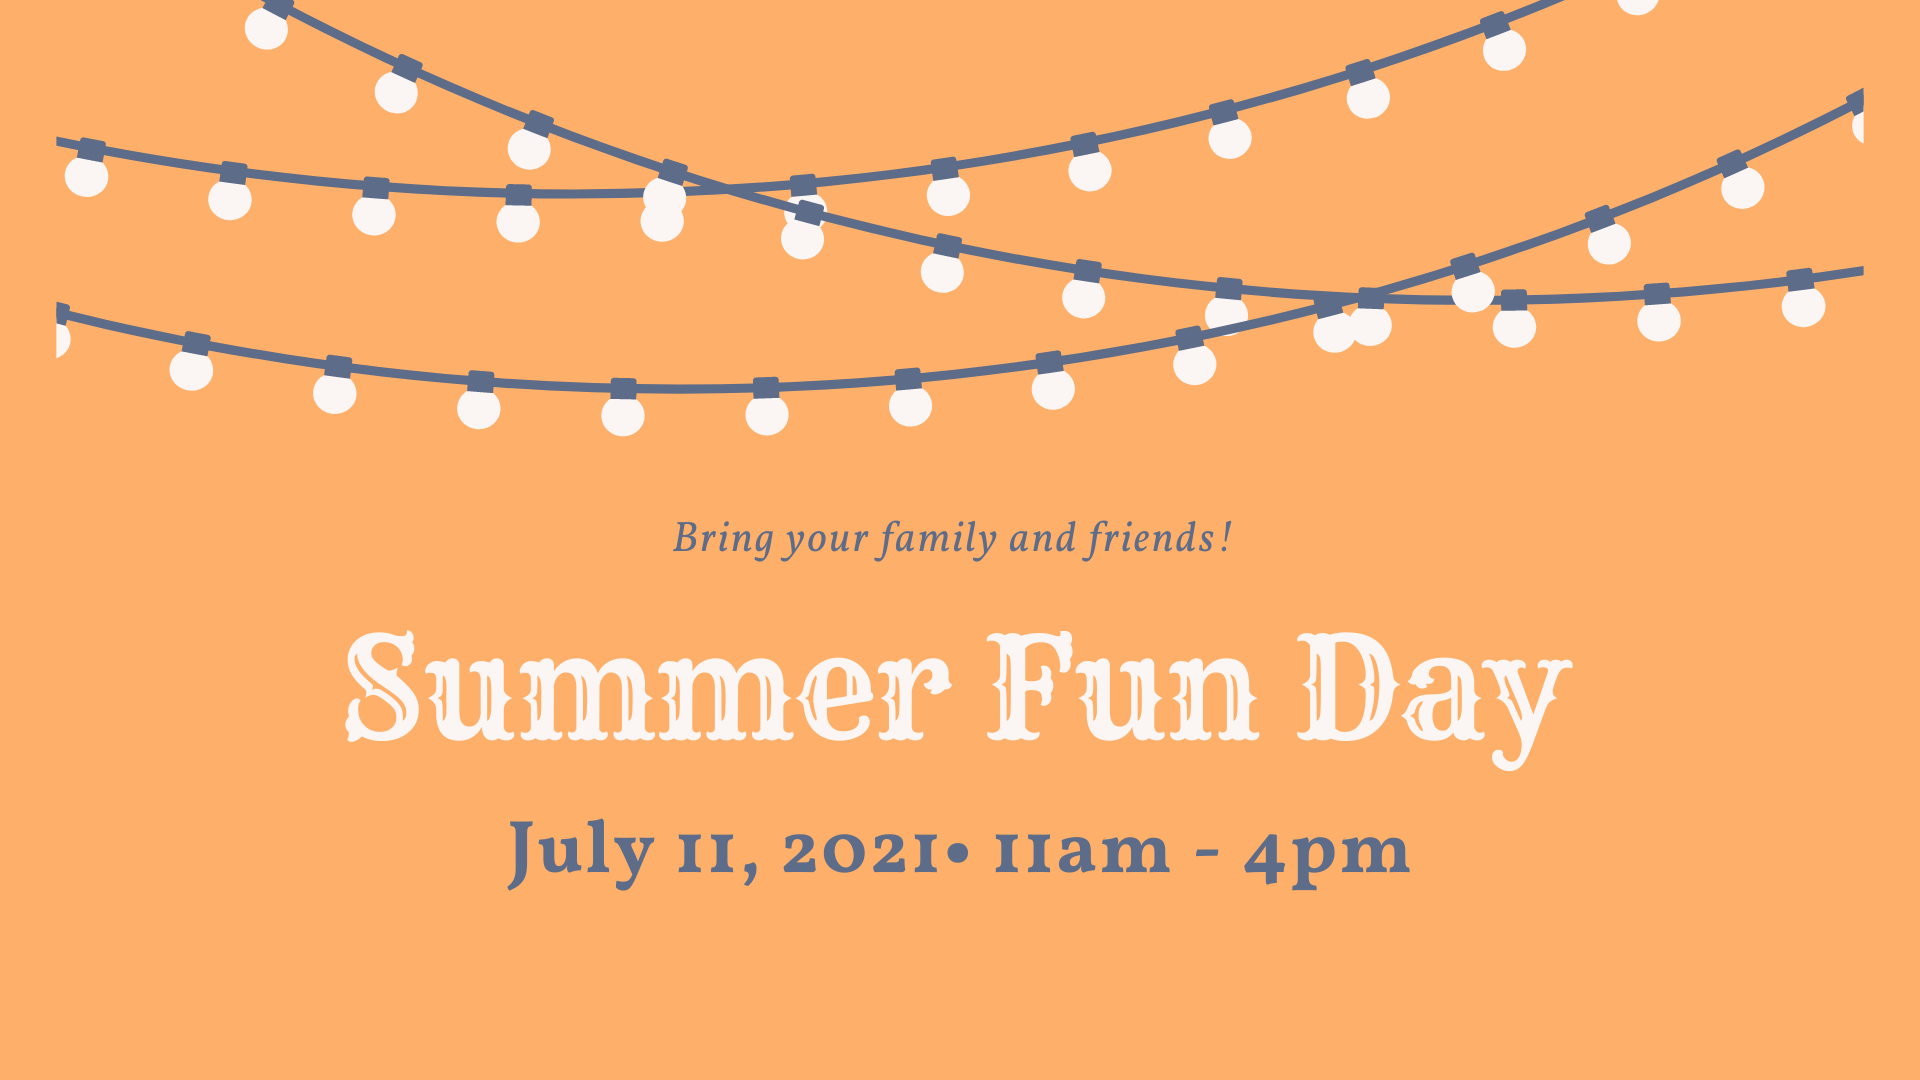 Summer Fun Day powerpoint image.png